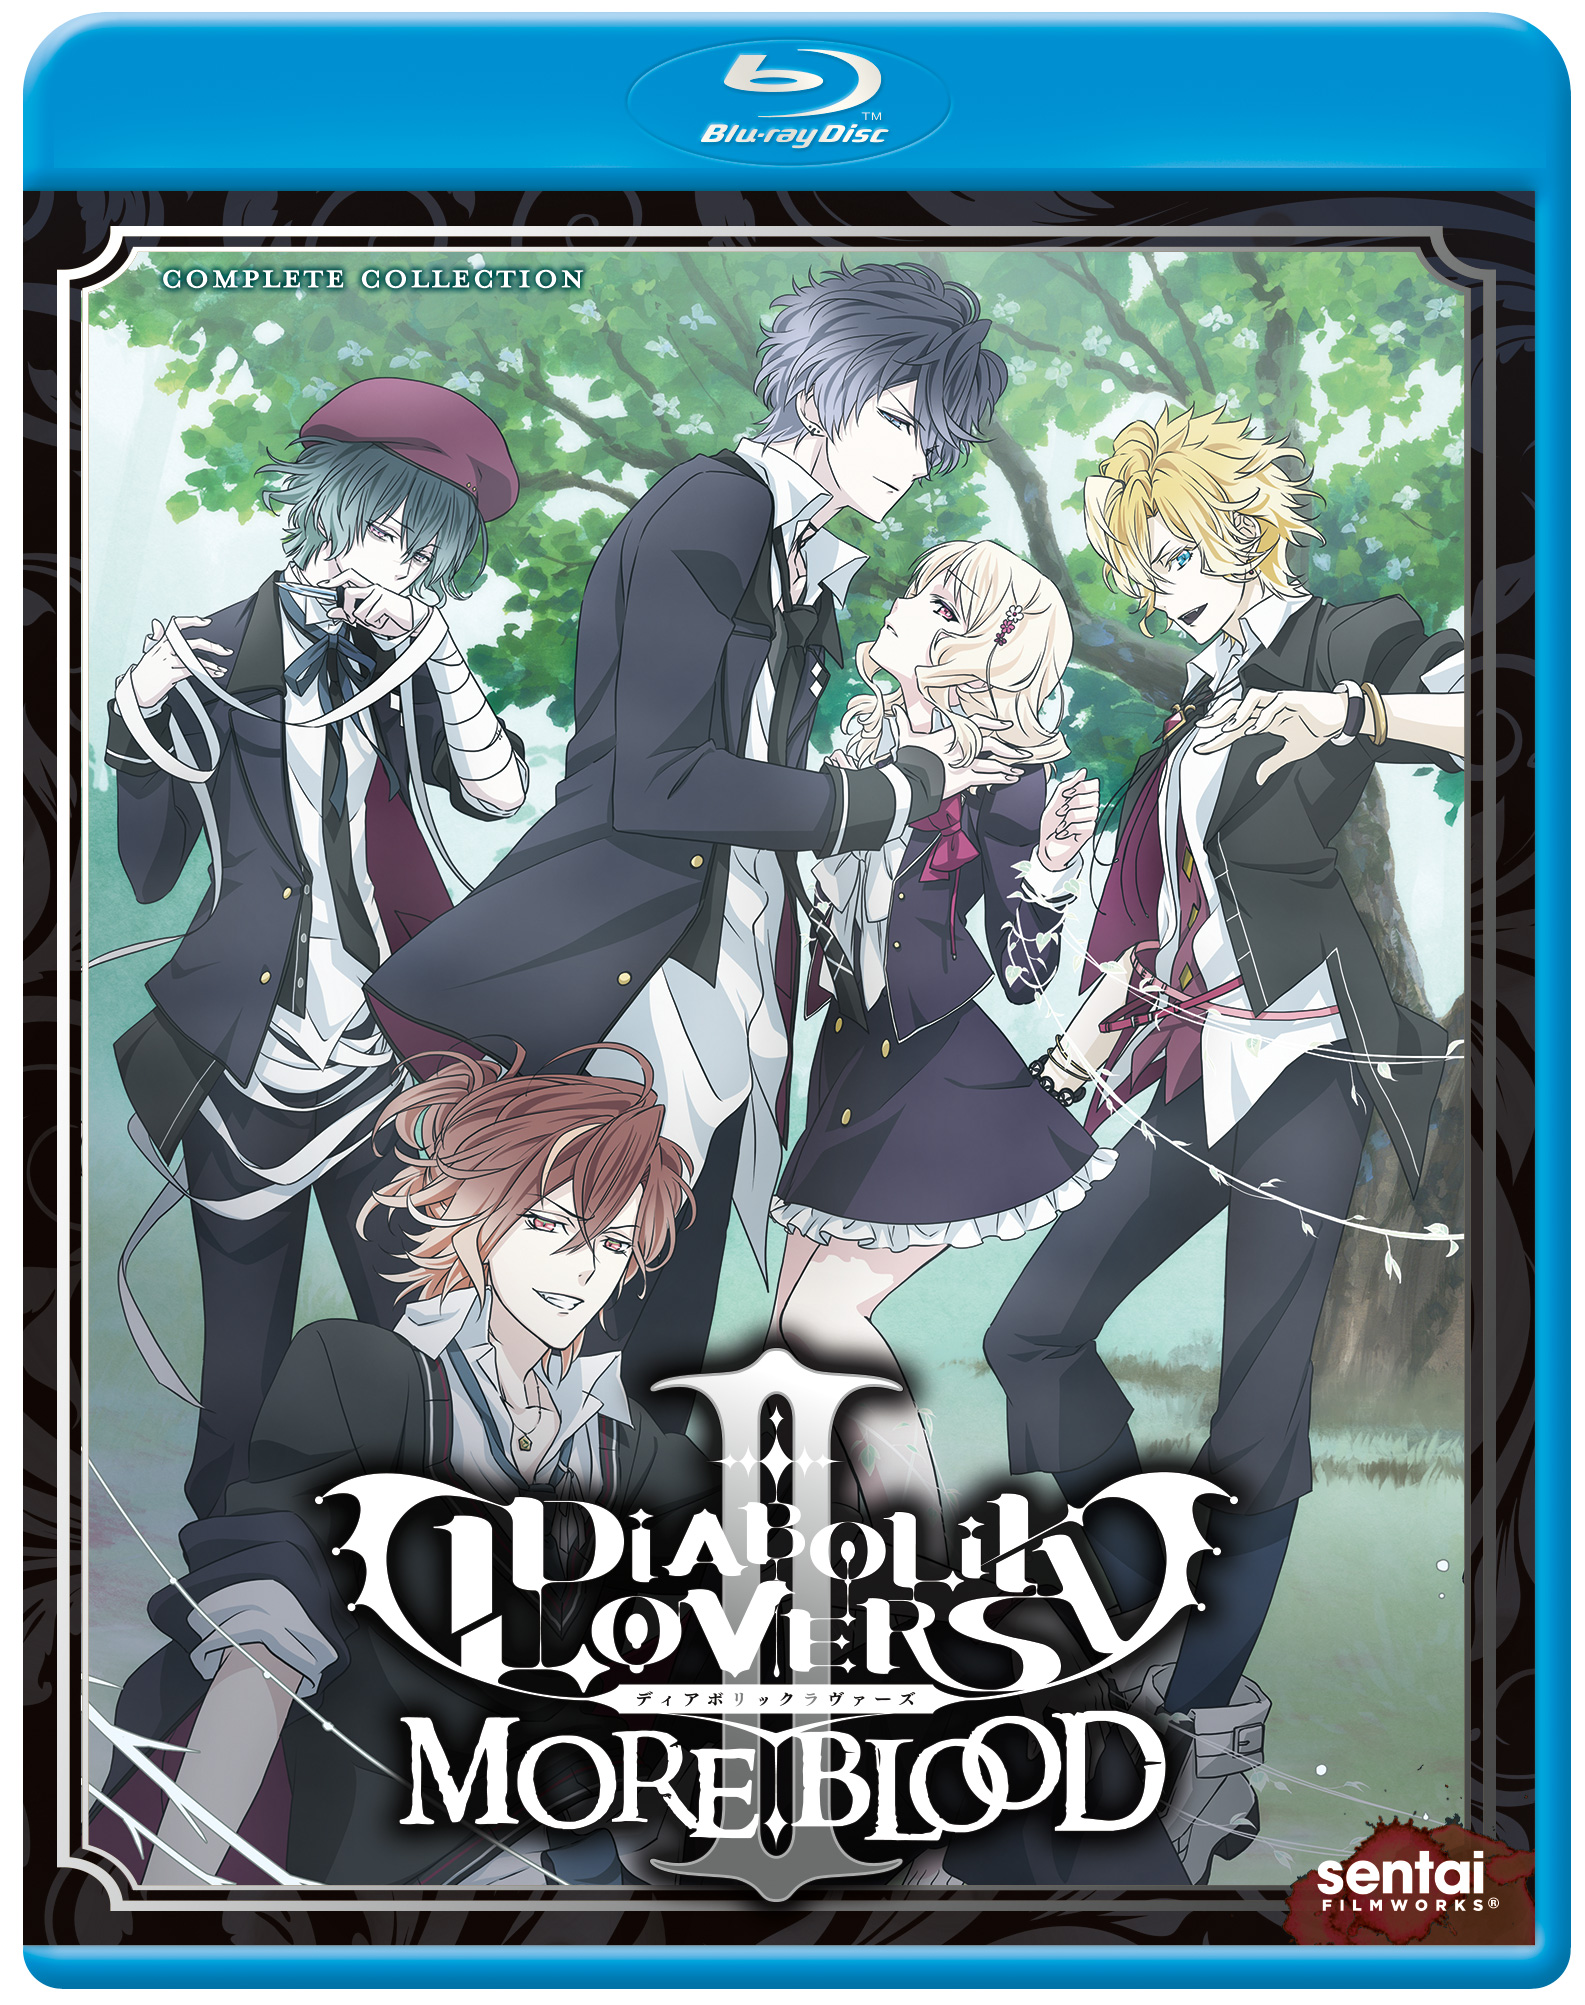 Diabolik Lovers II More Blood Blu-ray 816726022406